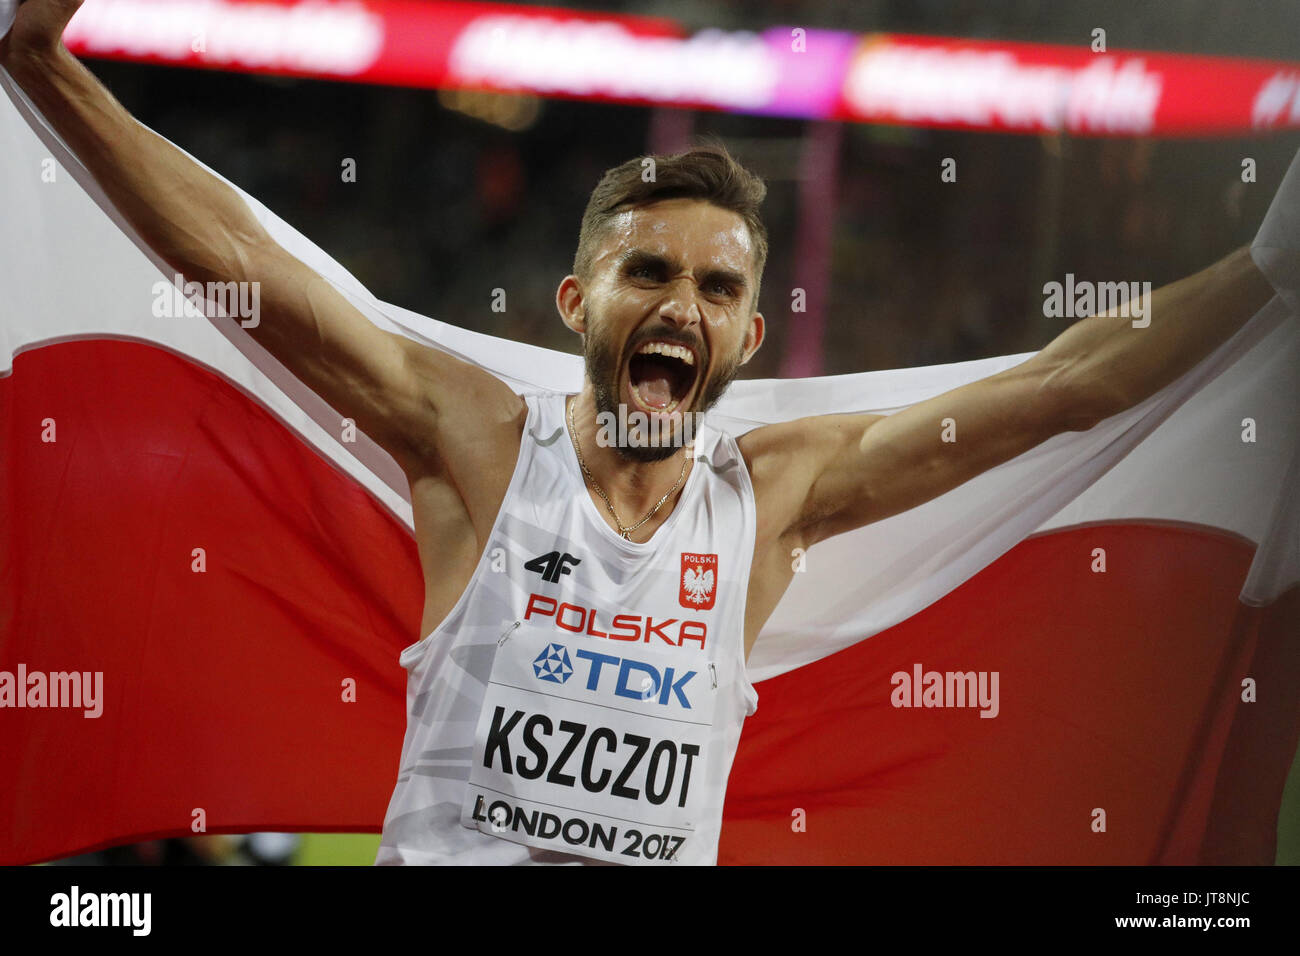 London, UK. 08th Aug, 2017. Polish athlete Adam Kszczot jubilates the bronze medal in the 800 meters final during the World Athletics Championships at the olympic stadium in London, United Kingdom, 08 August 2017. EFE/Lavandeira jr./Alamy Live News - Stock Image